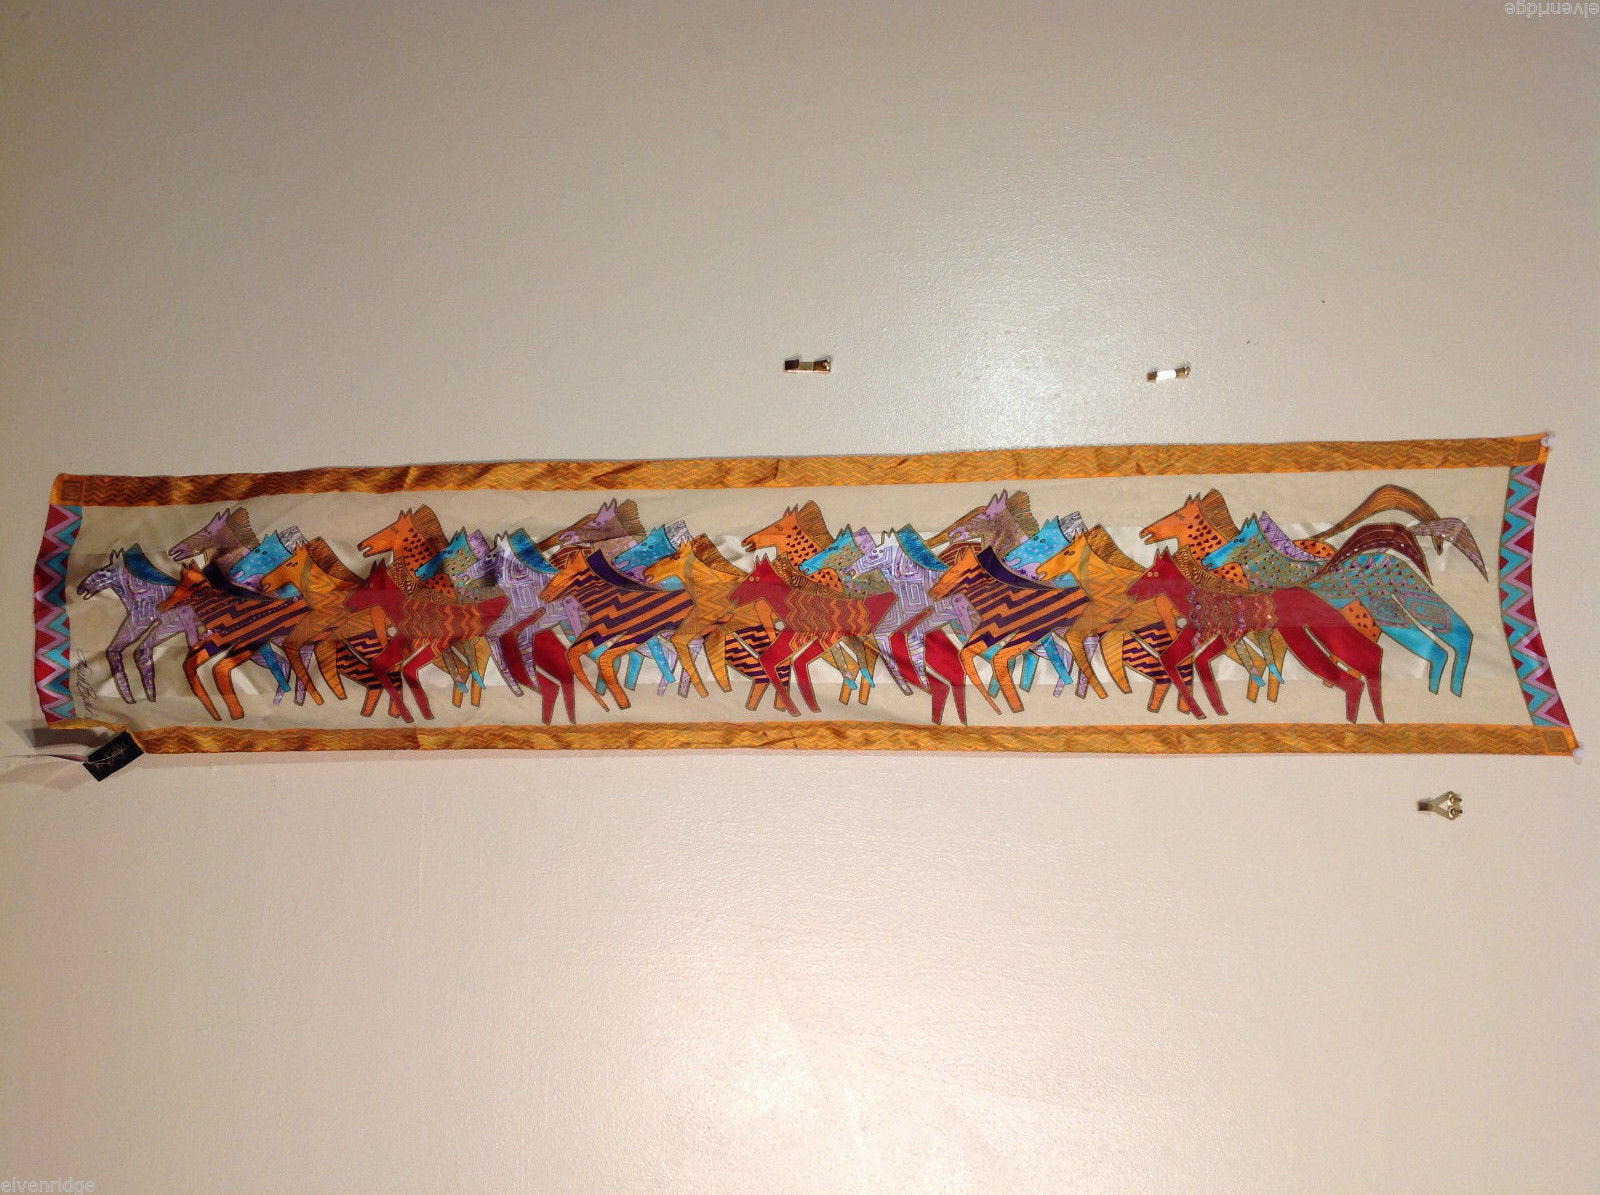 Laurel Burch 100% Pure Silk Scarf in Horses Print Embellished w/ Beads, Sequins